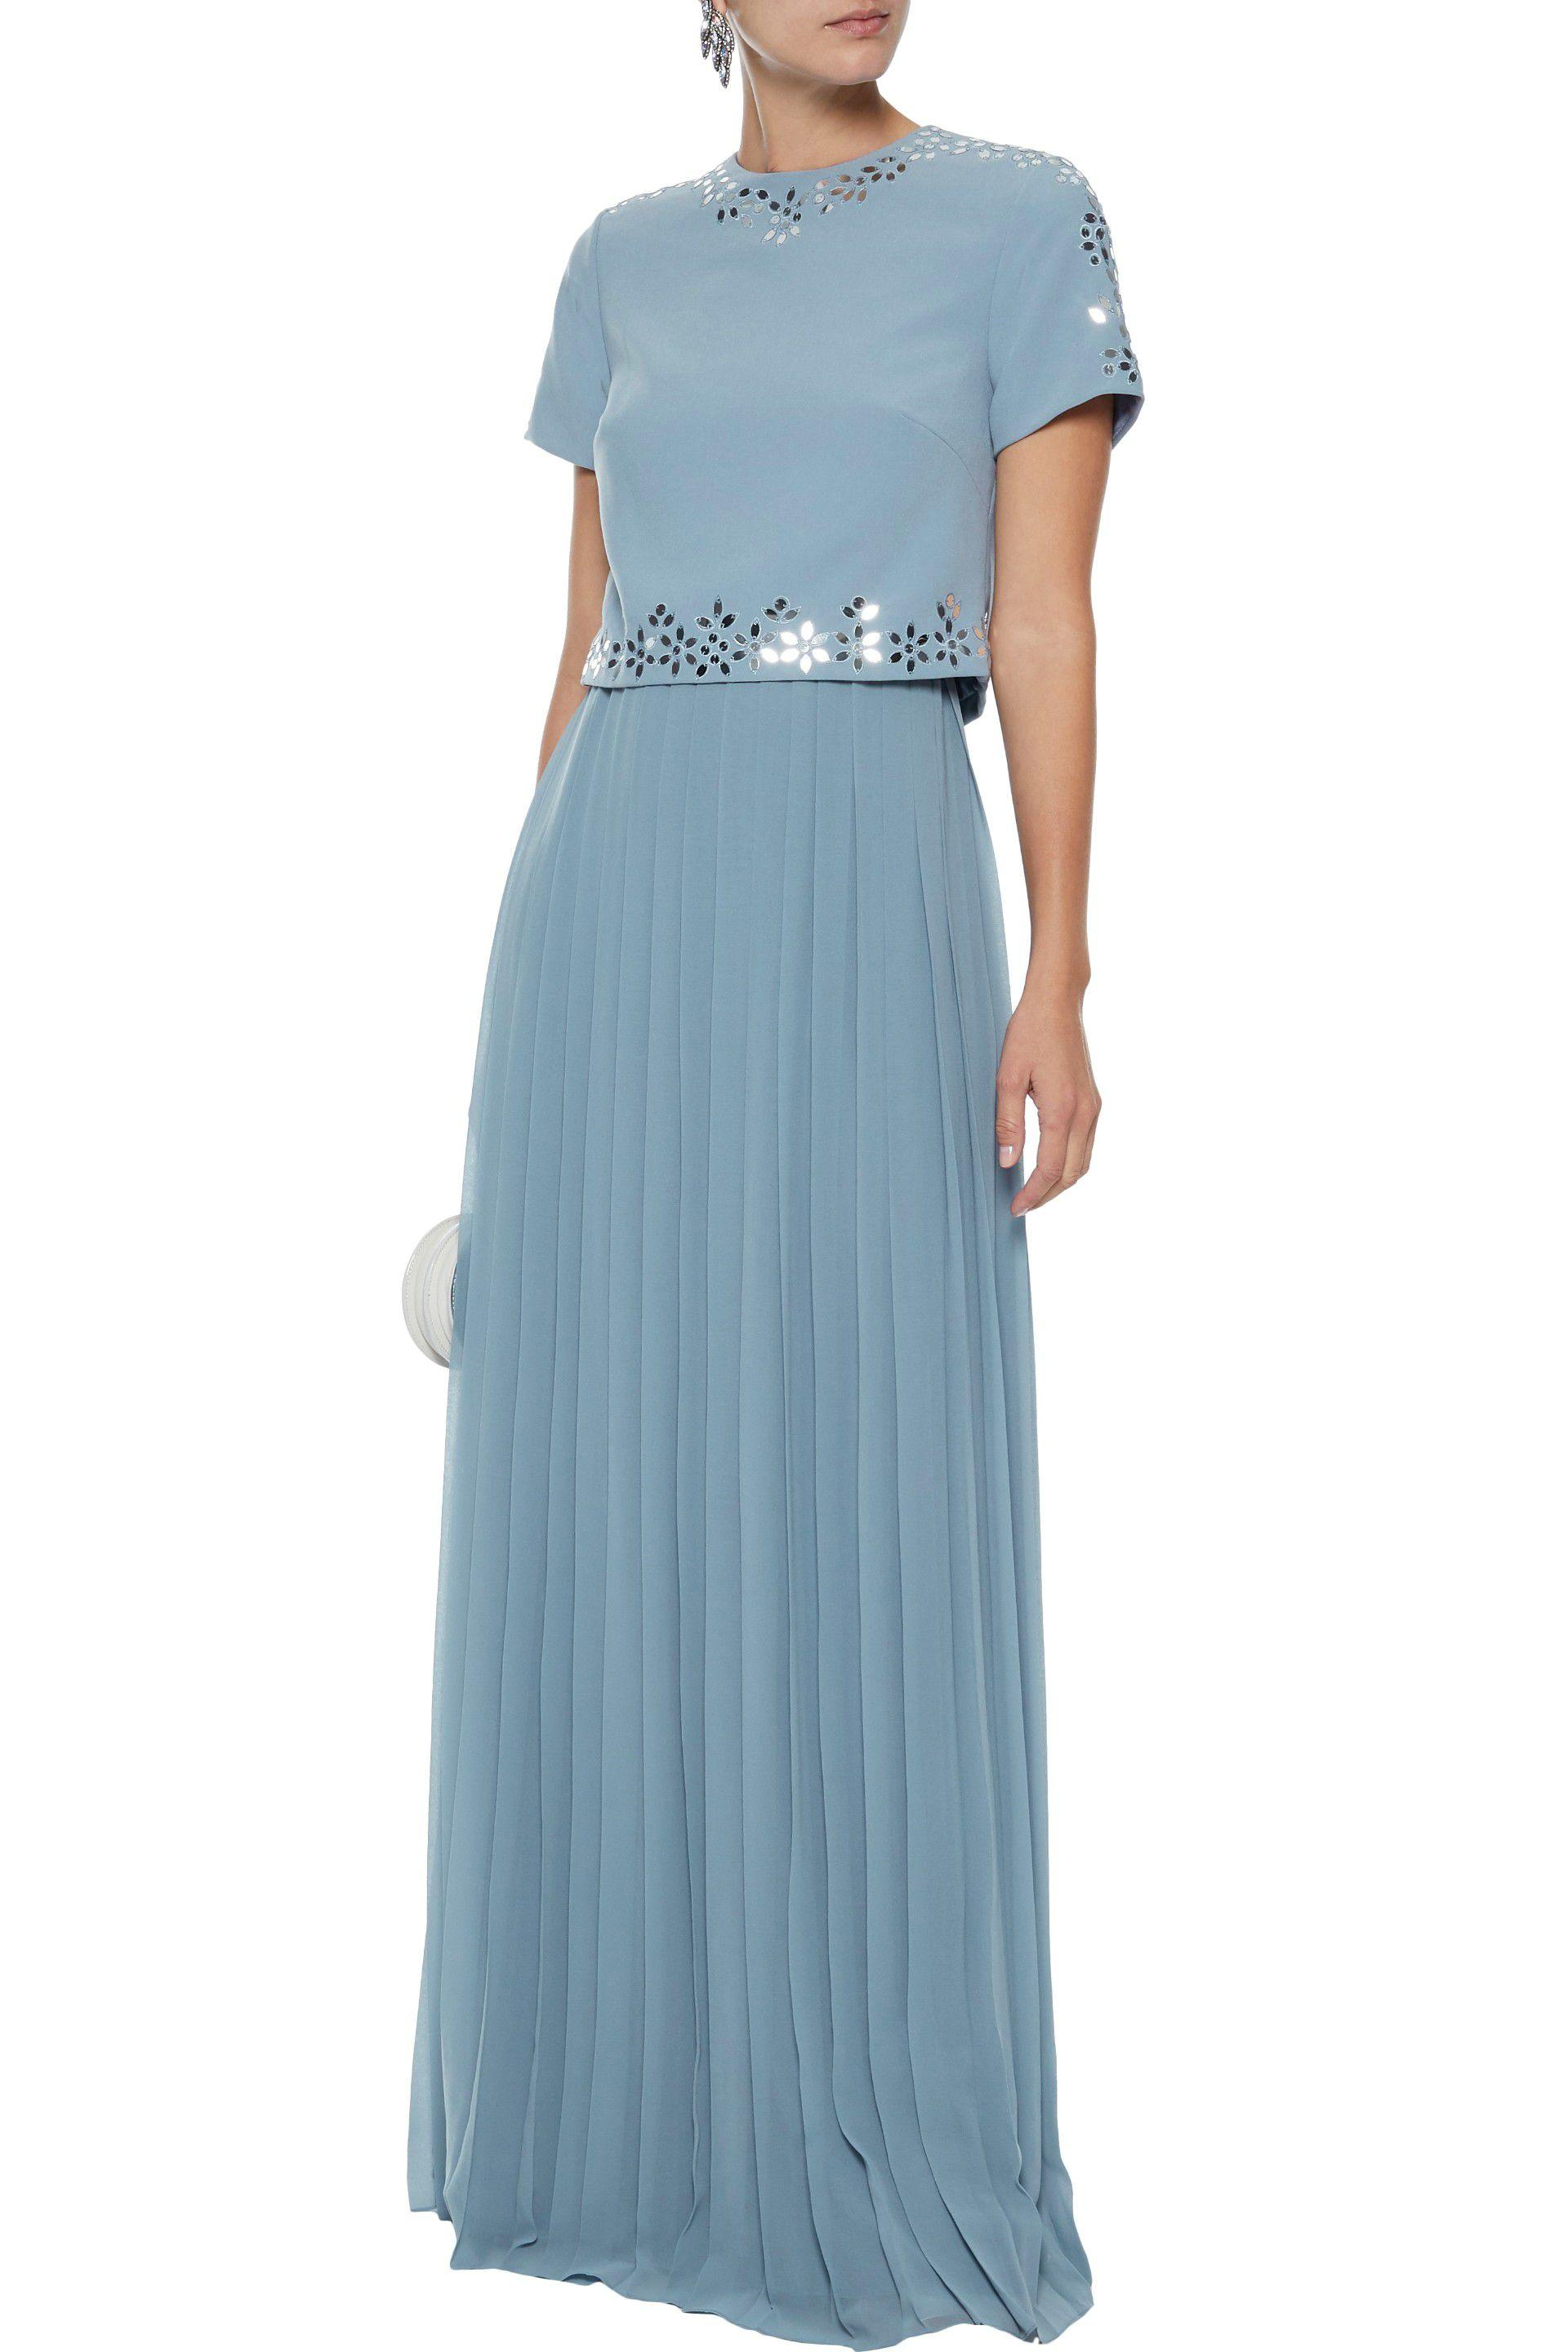 e3eb4d6b7a9d6 ... Layered Embellished Crepe And Pleated Chiffon Maxi Dress Light Blue -  Lyst. View fullscreen